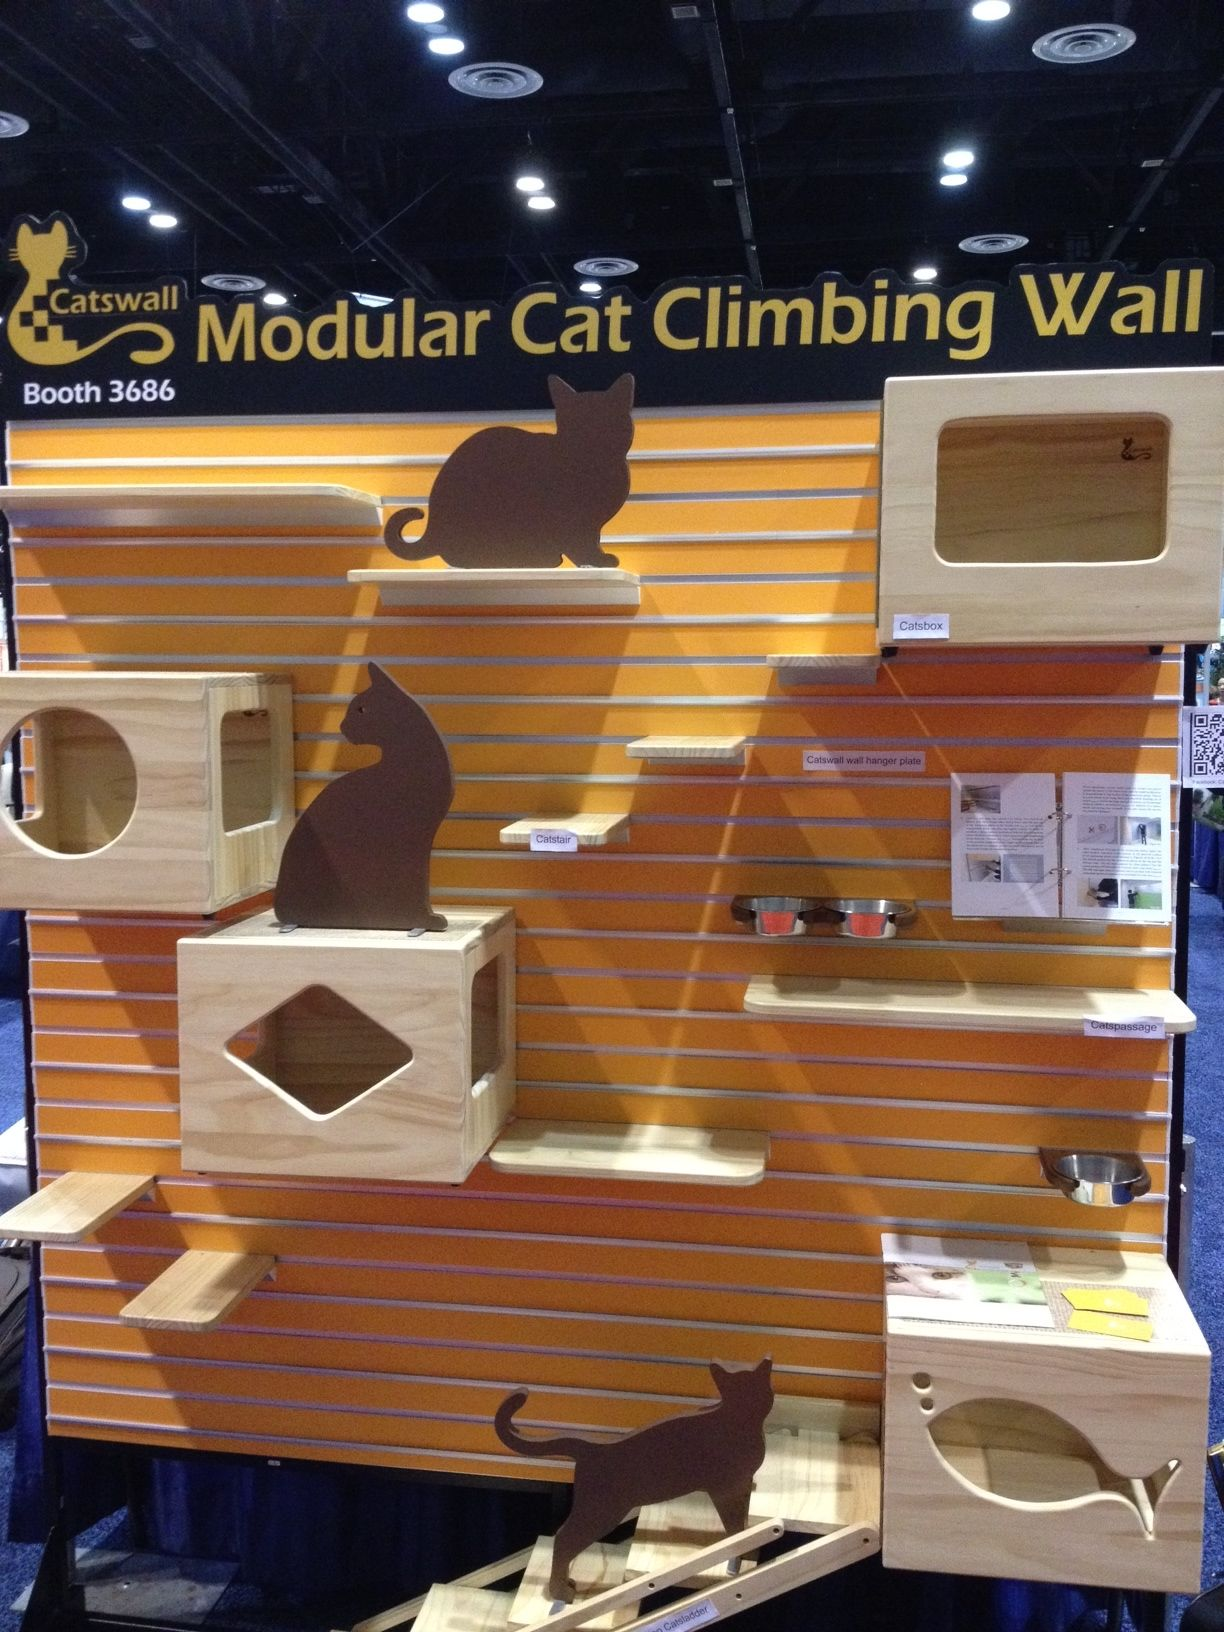 Climbing wall for cats, seen at Global Pet Expo 2012 in